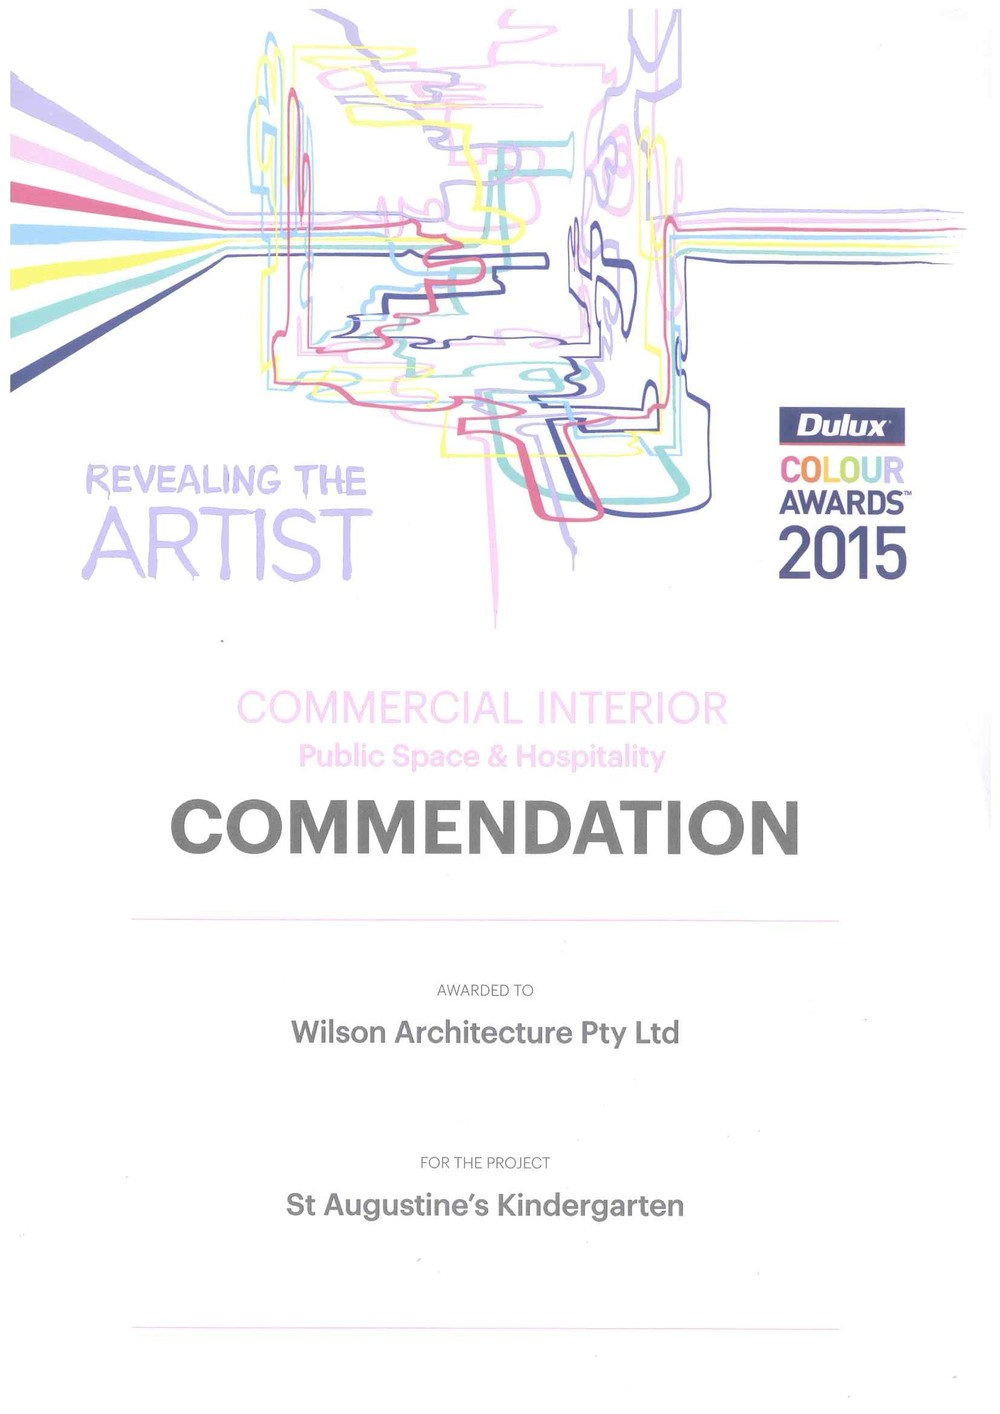 dulux colour award 2015.jpg